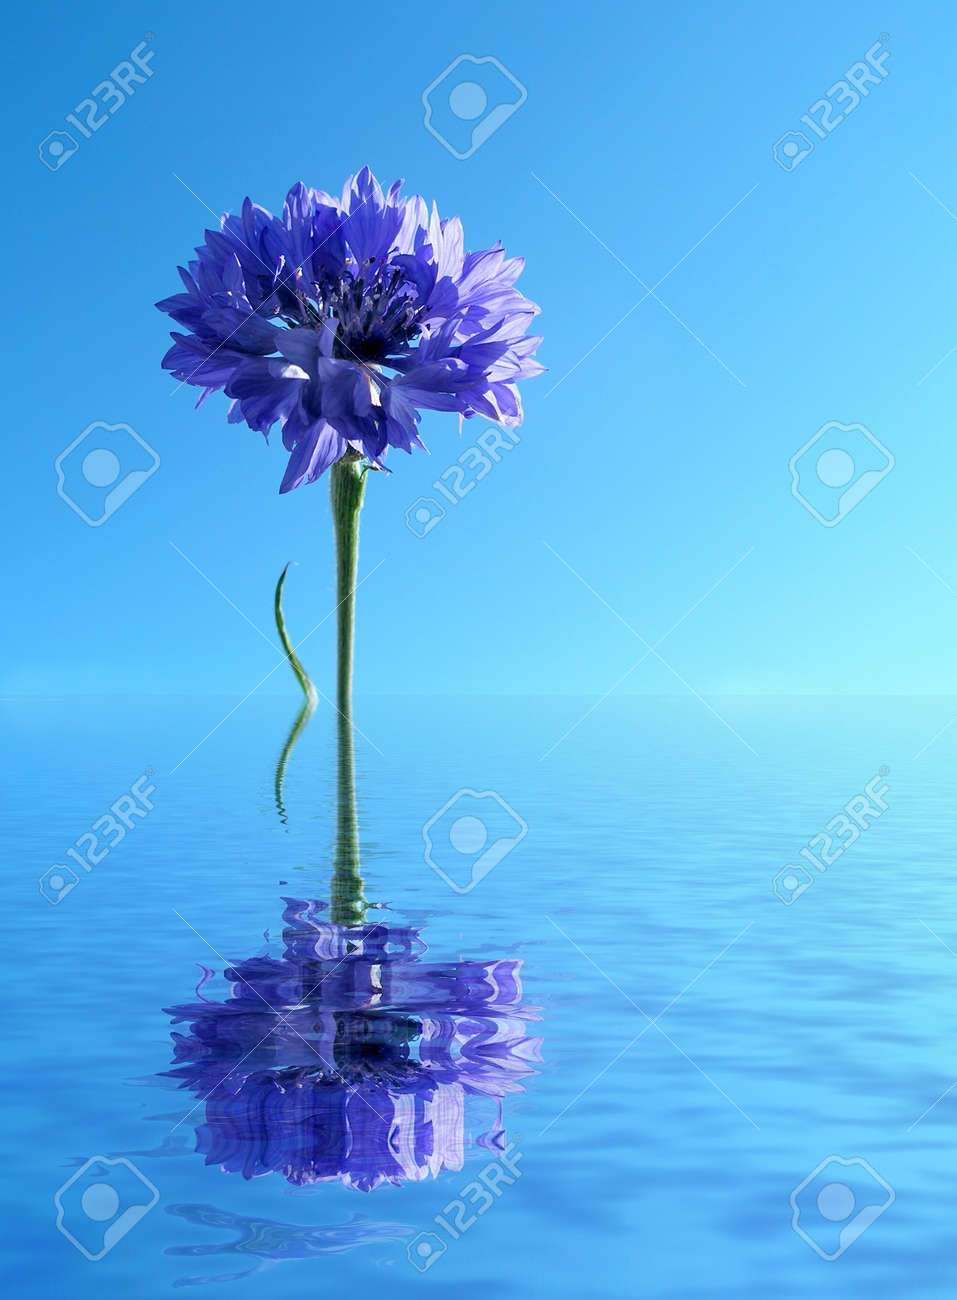 Blue cornflower reflected in water Stock Photo - 552670